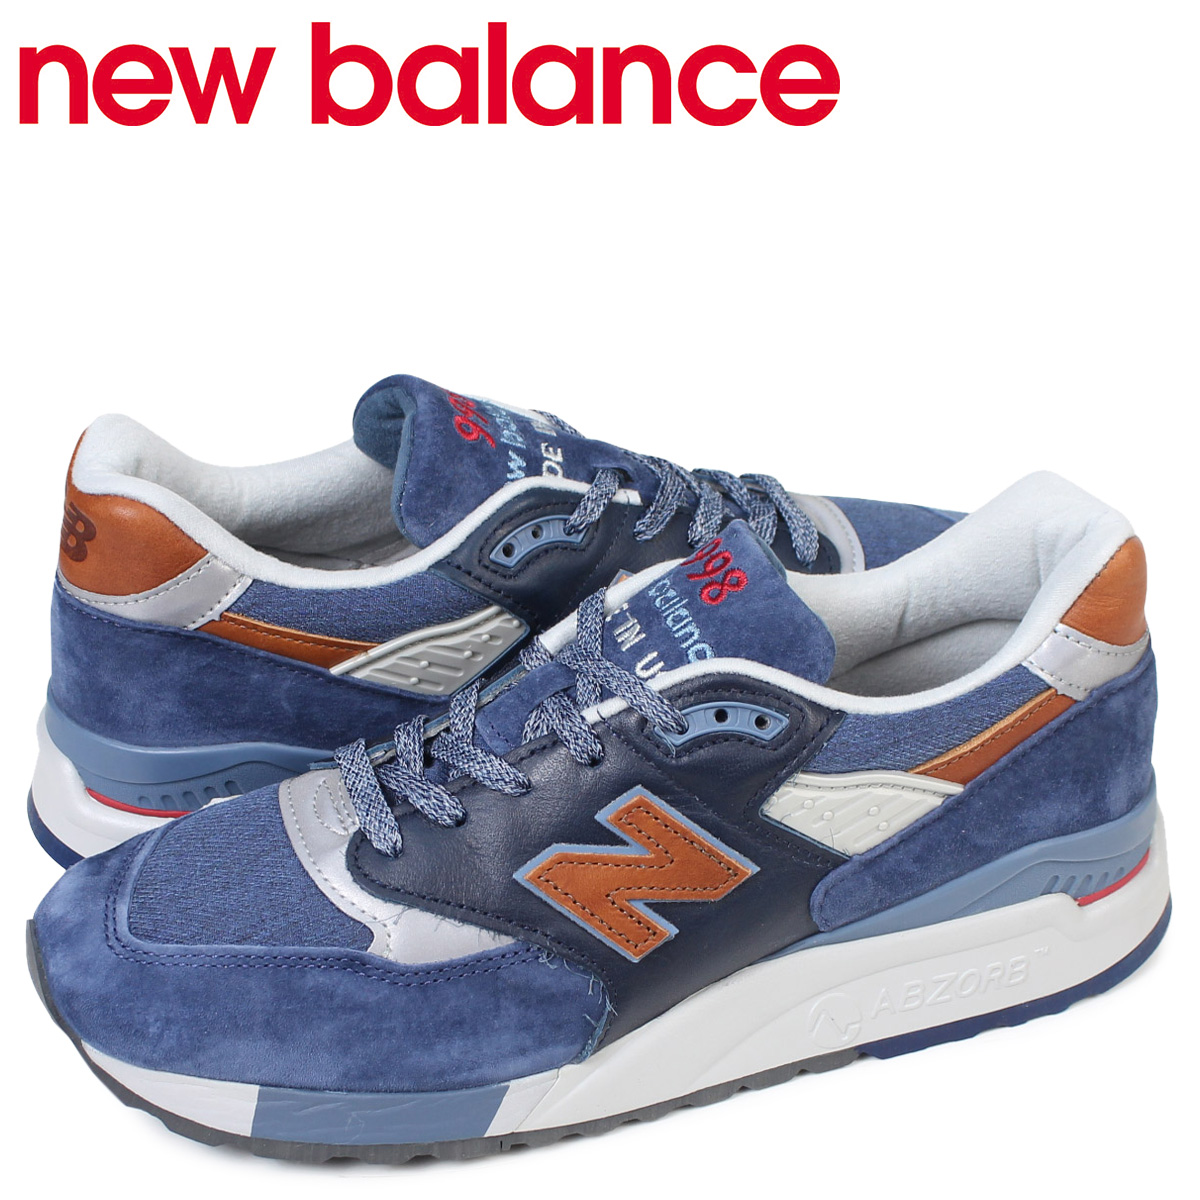 save off 30062 35a84 new balance 998 men's New Balance sneakers M998DSNG D Wise MADE IN USA  shoes navy